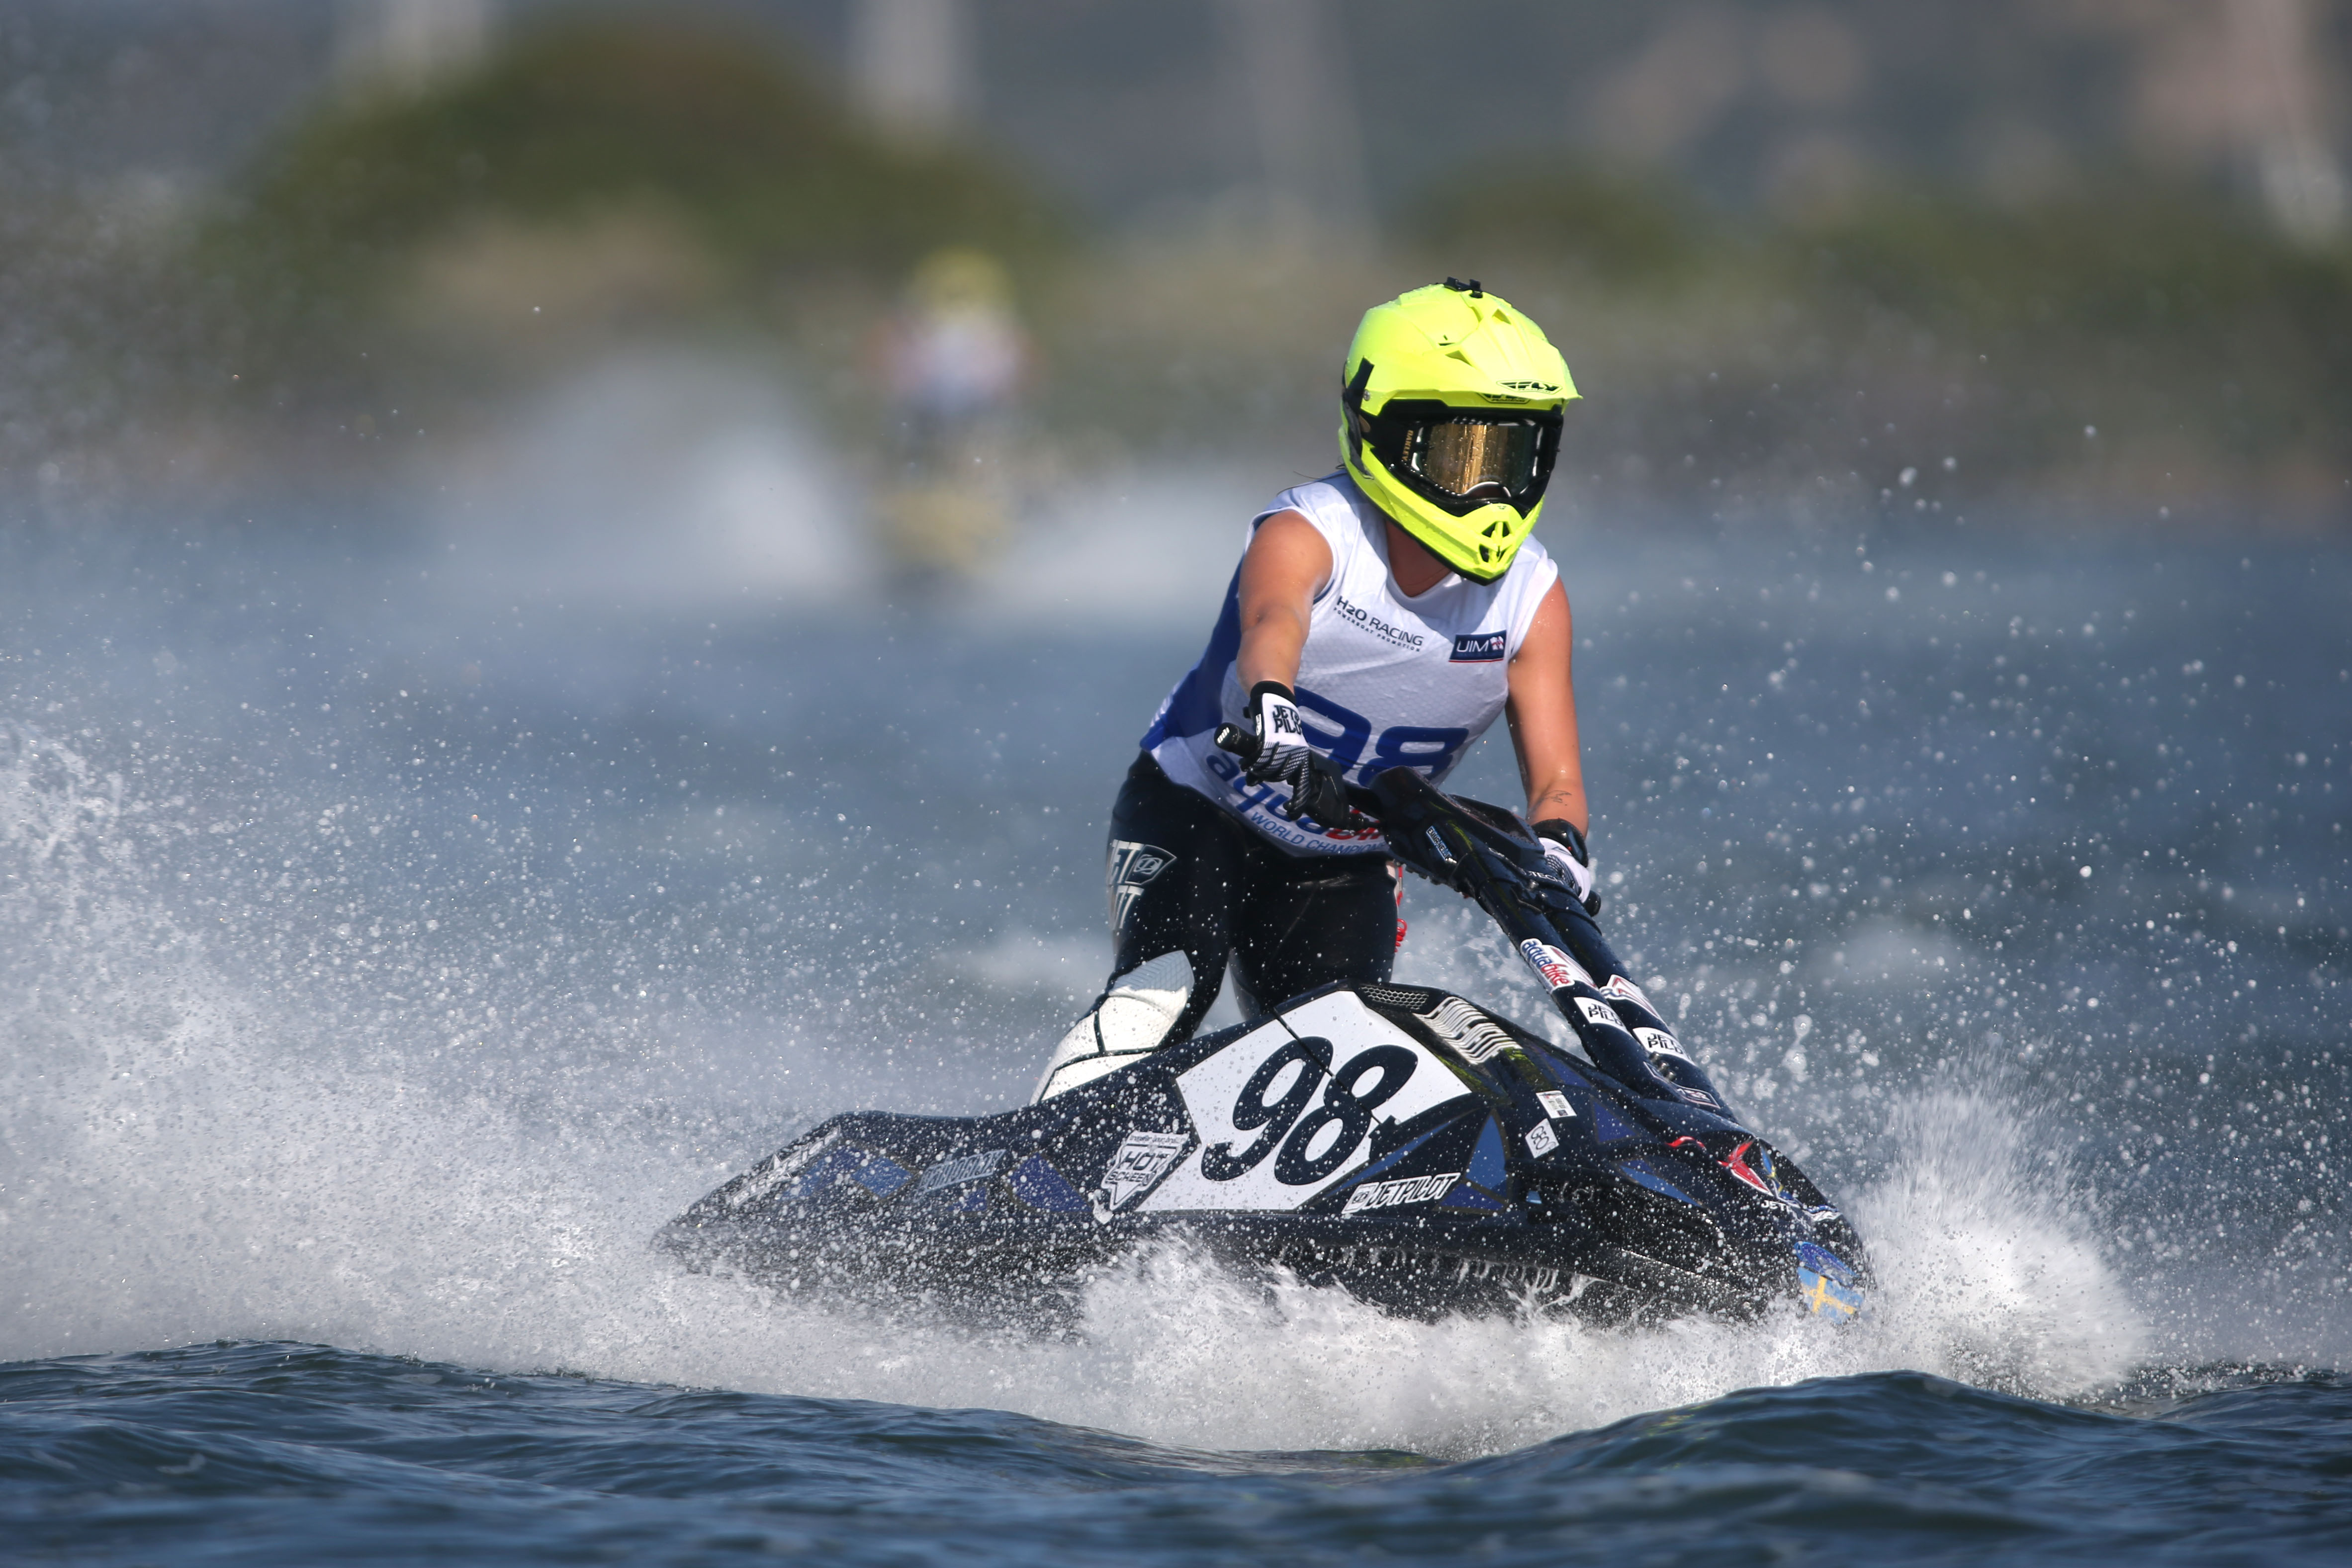 EMMA-NELLIE ORTENDAHL PRODUCES SENSATIONAL LAP TO TAKE POLE POSITION IN OLBIA